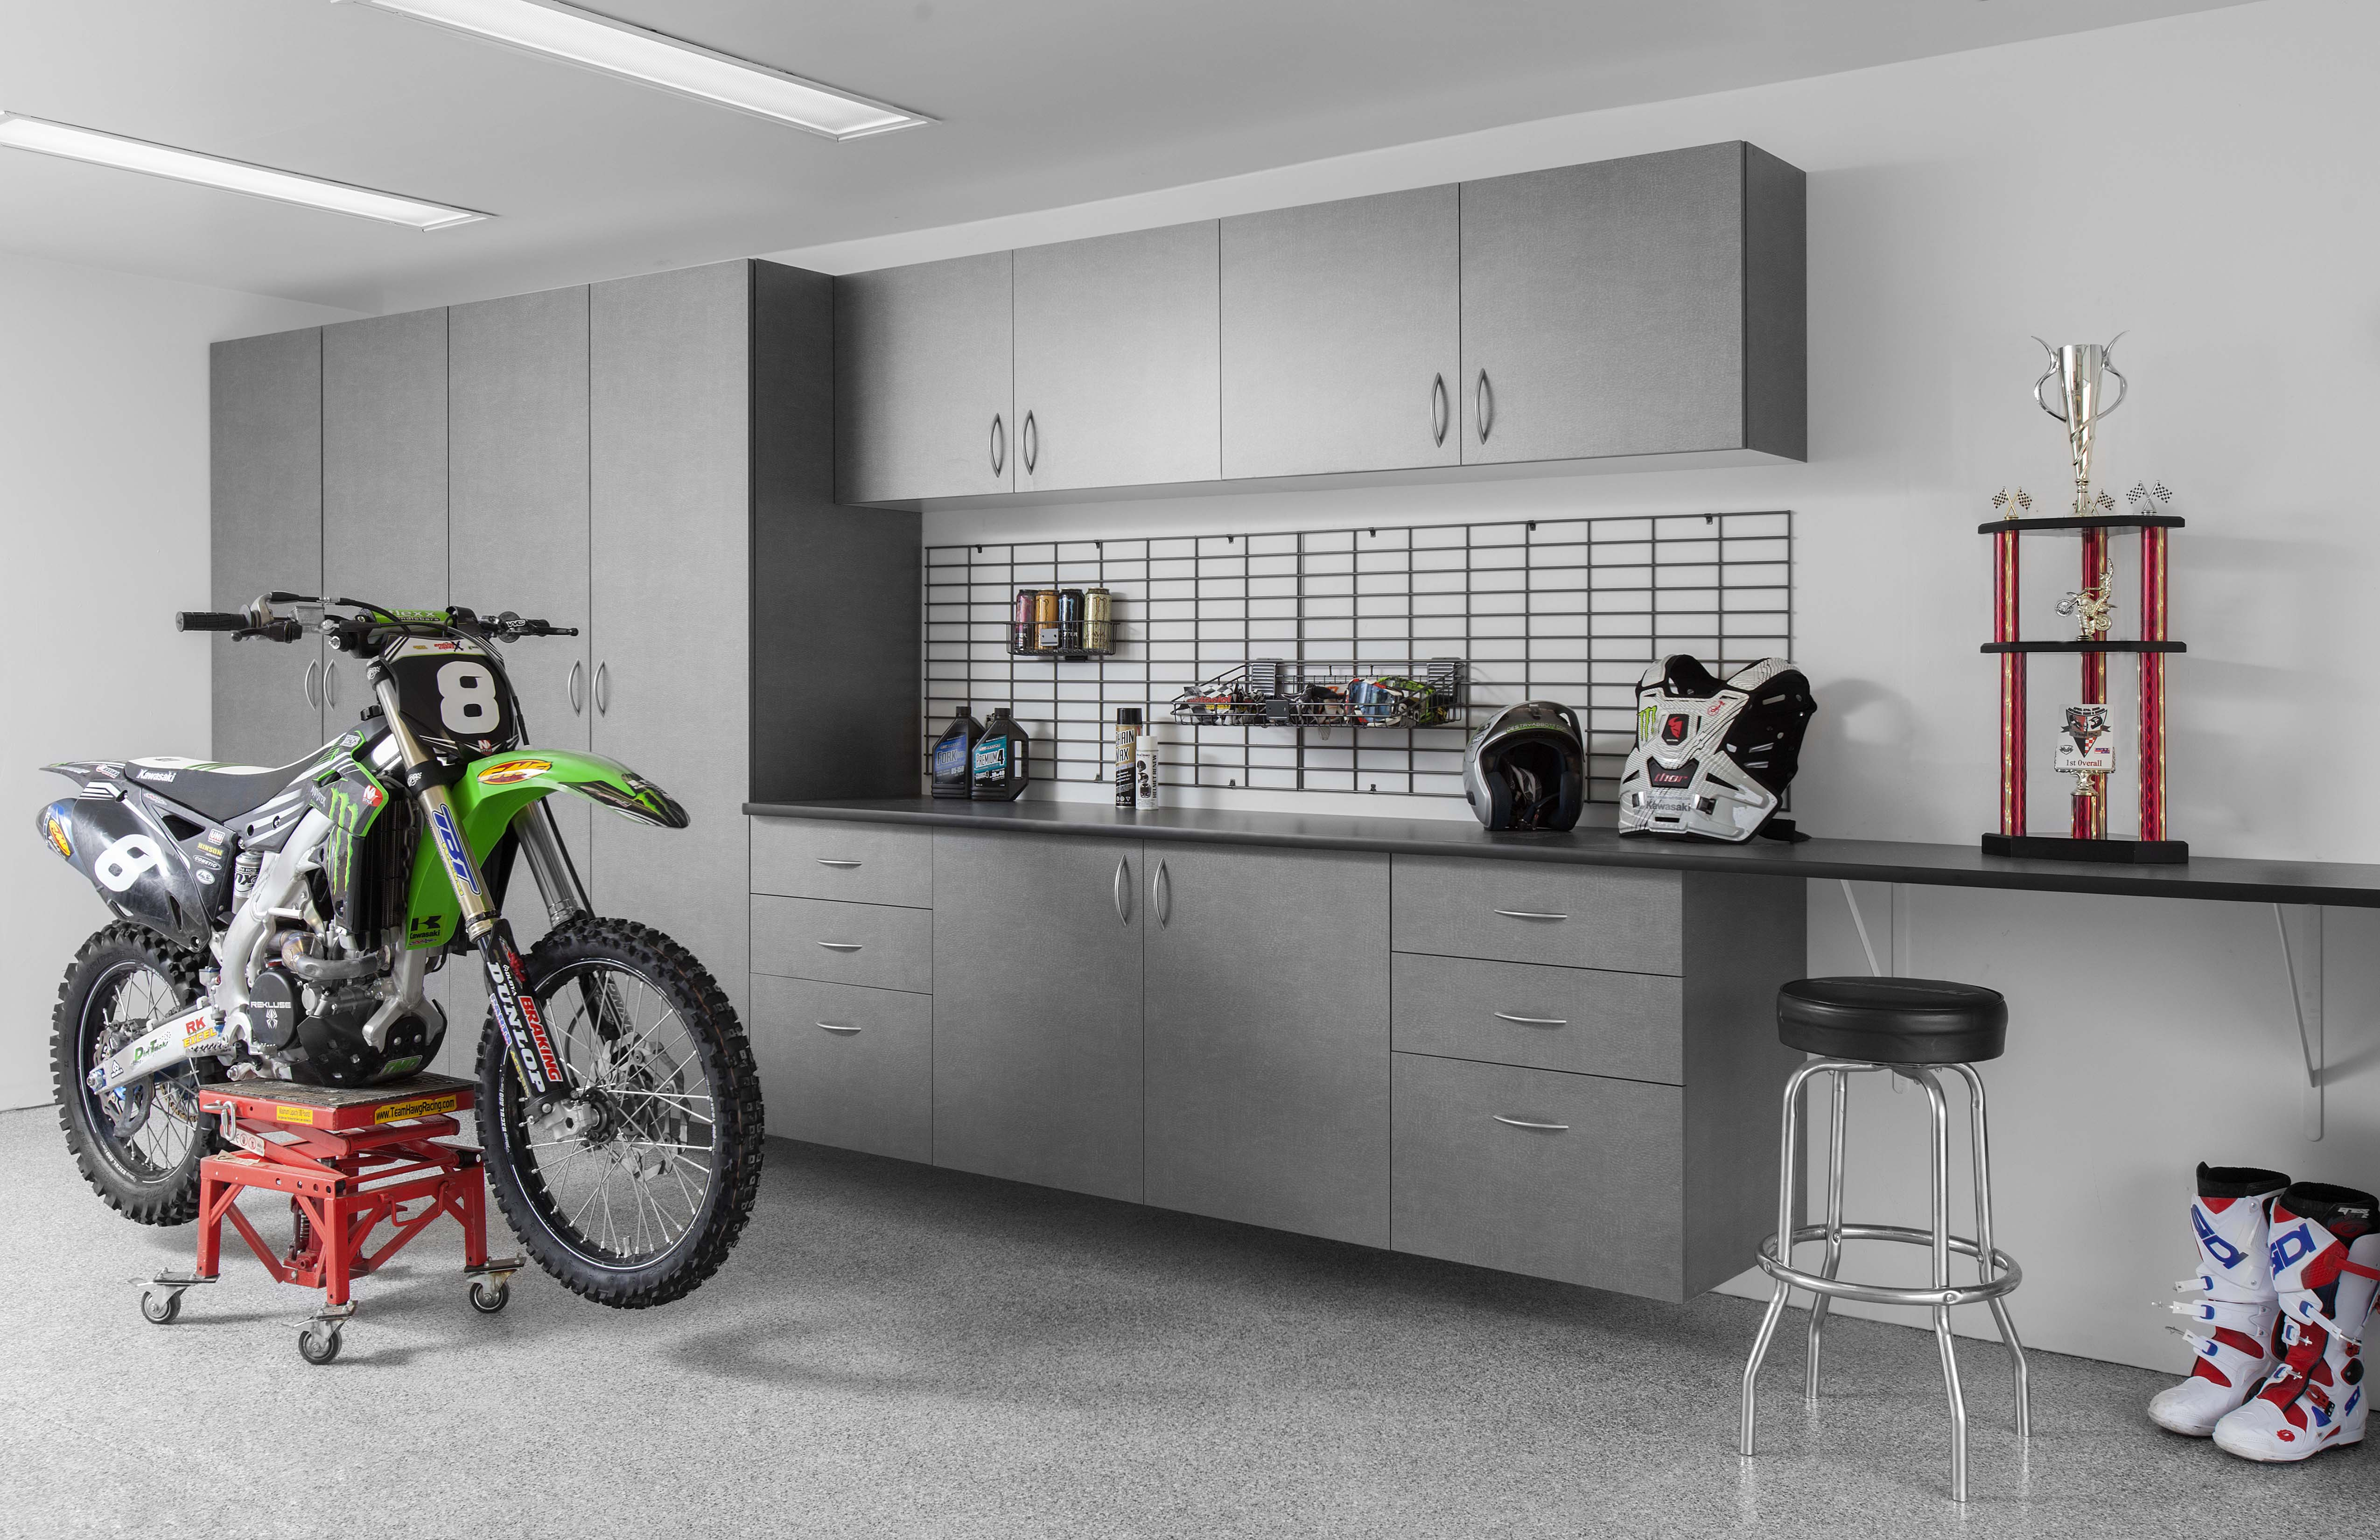 Pewter Cabinets-Ebony Star Workbench-Silverado Floor-Dirt Bike-Abbott-May 2013